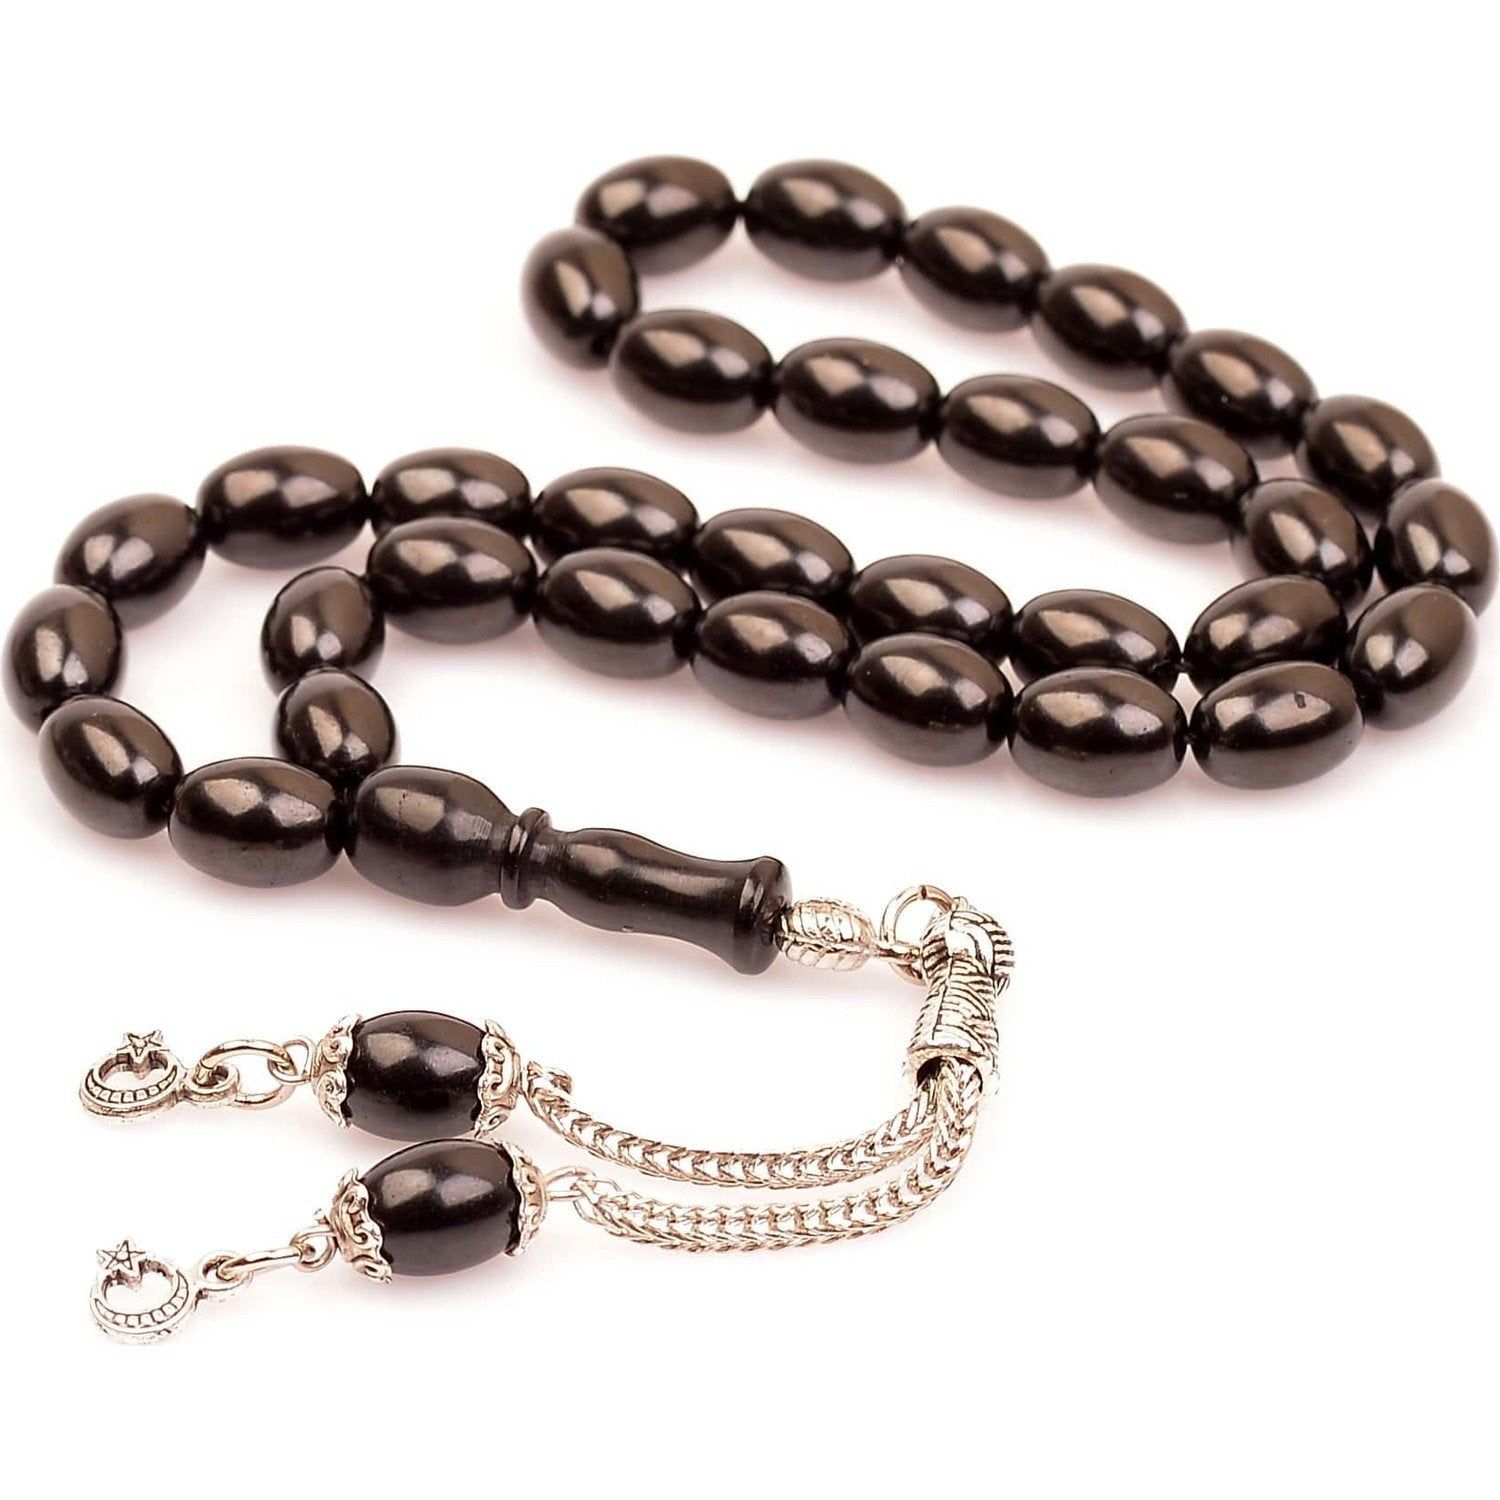 Jet Natural Worry Beads, Healing Prayer Beads, Jet Tasbih, Gurcu Oltu Tesbih Jetstone Misbaha Turkish 042